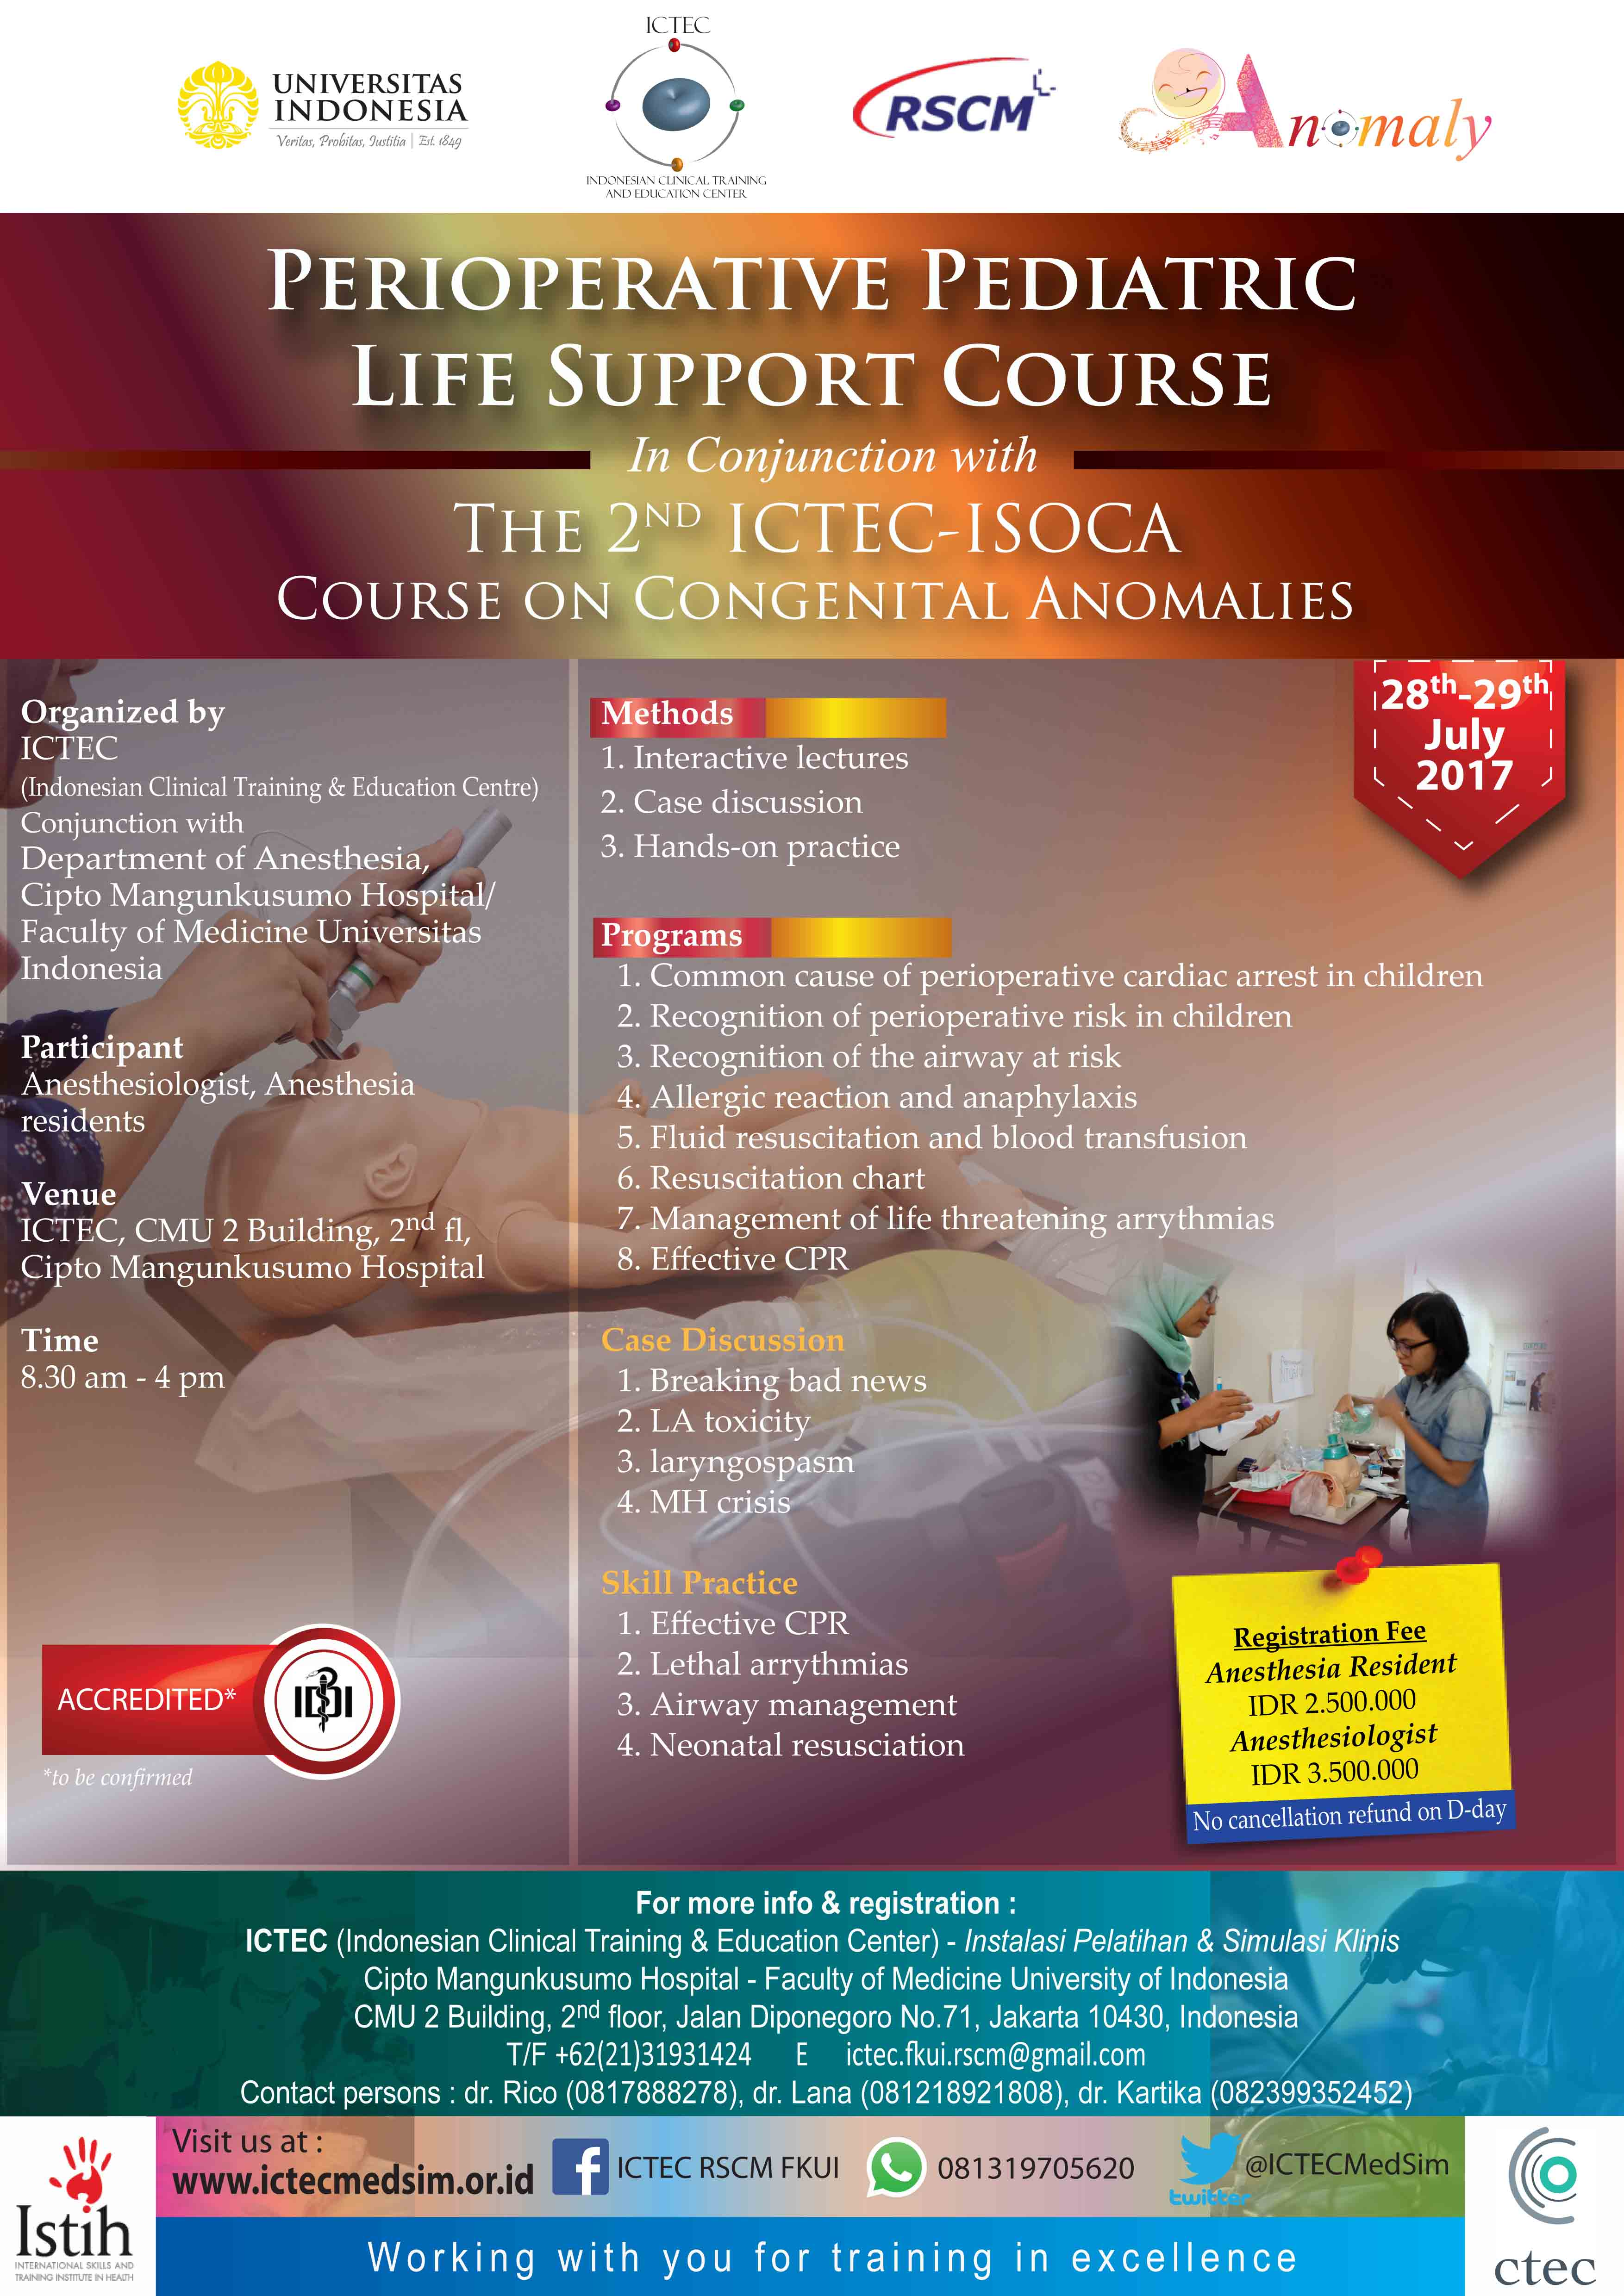 Pediatric Life Support Course